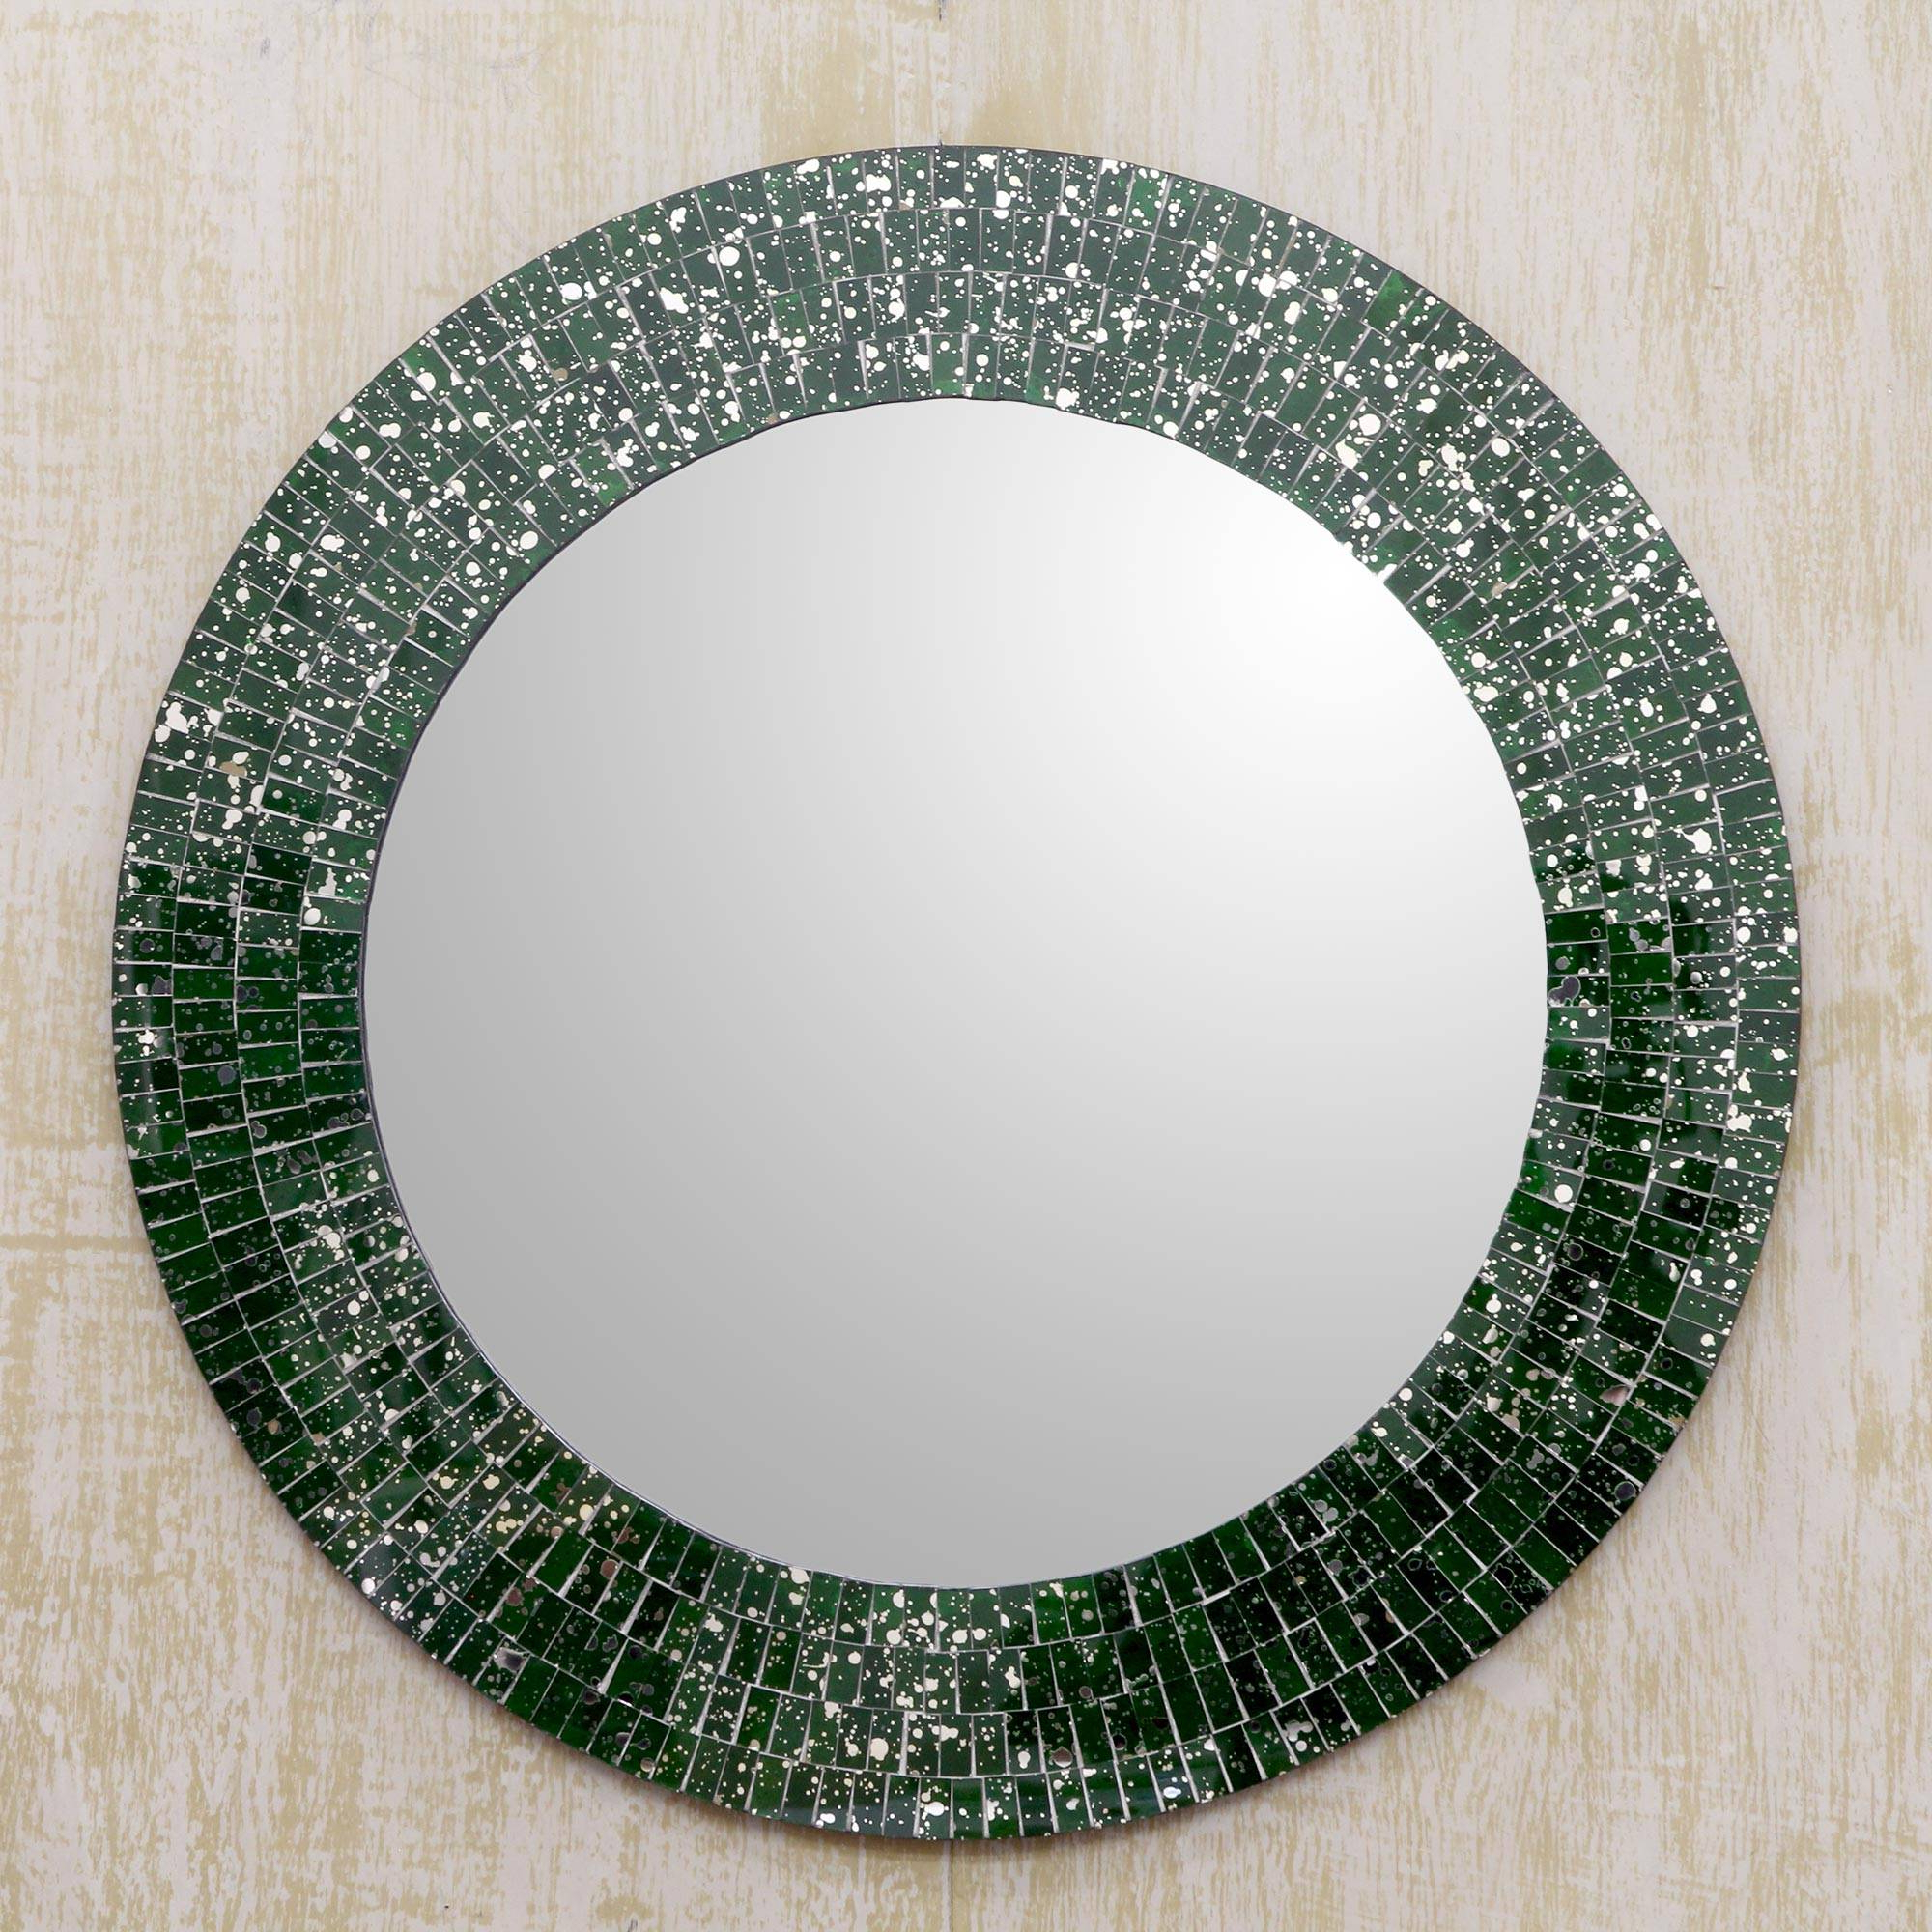 Green Glass Mosaic Round Wall Mirror Craftedhand, 'round Emerald Cosmos' Intended For Fashionable Round Mosaic Wall Mirrors (View 16 of 20)